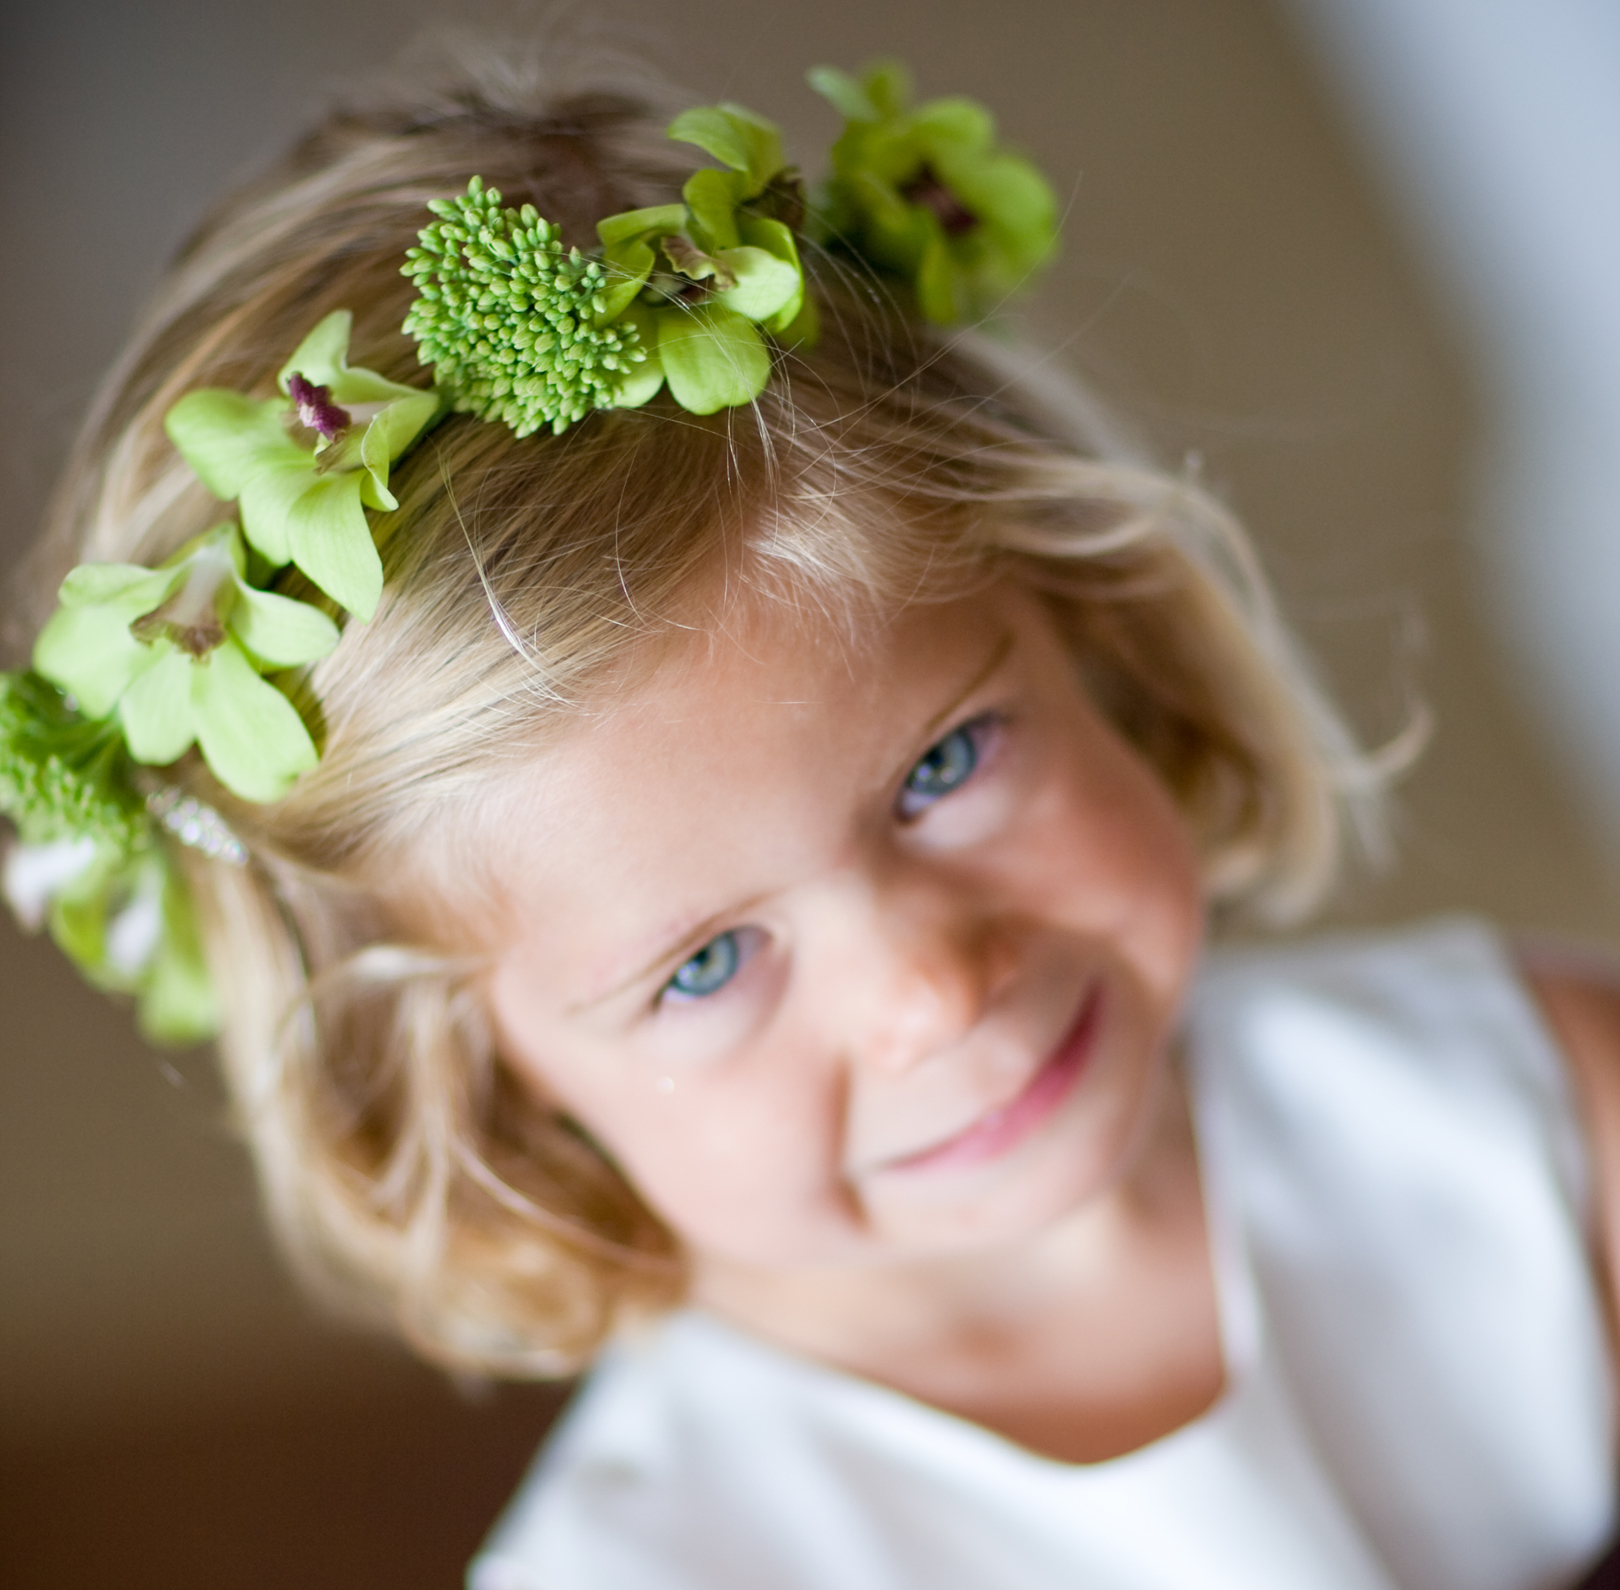 Flower girl style 15 flower crowns to complete her look inside green flower crown izmirmasajfo